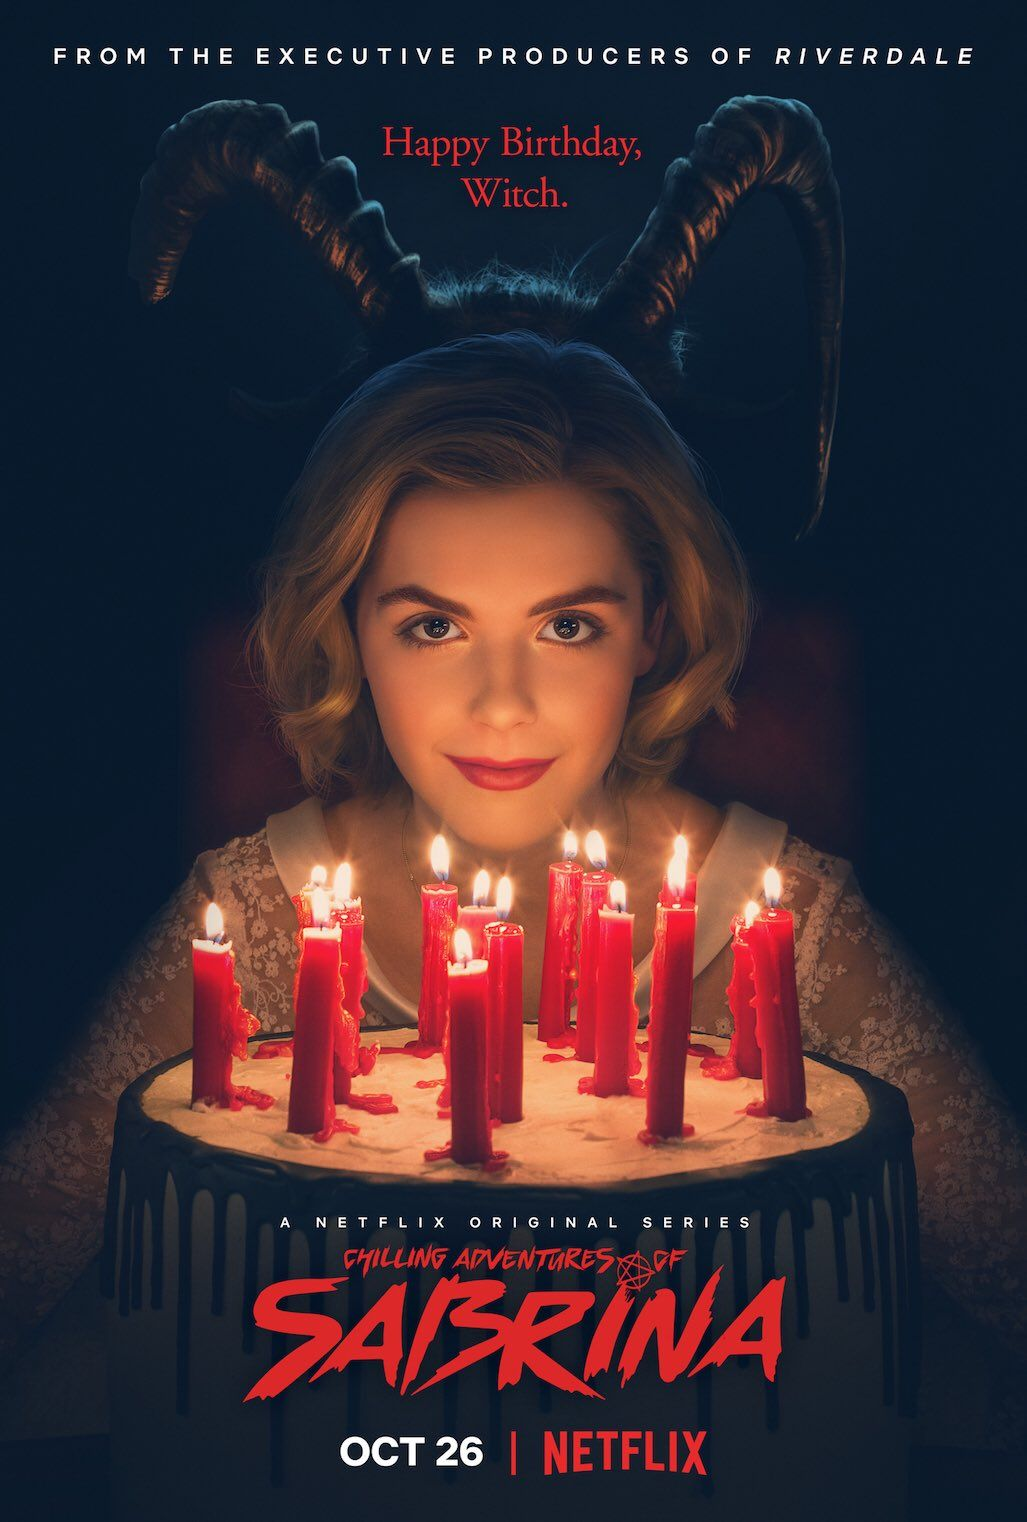 Image result for chilling adventures of sabrina netflix poster